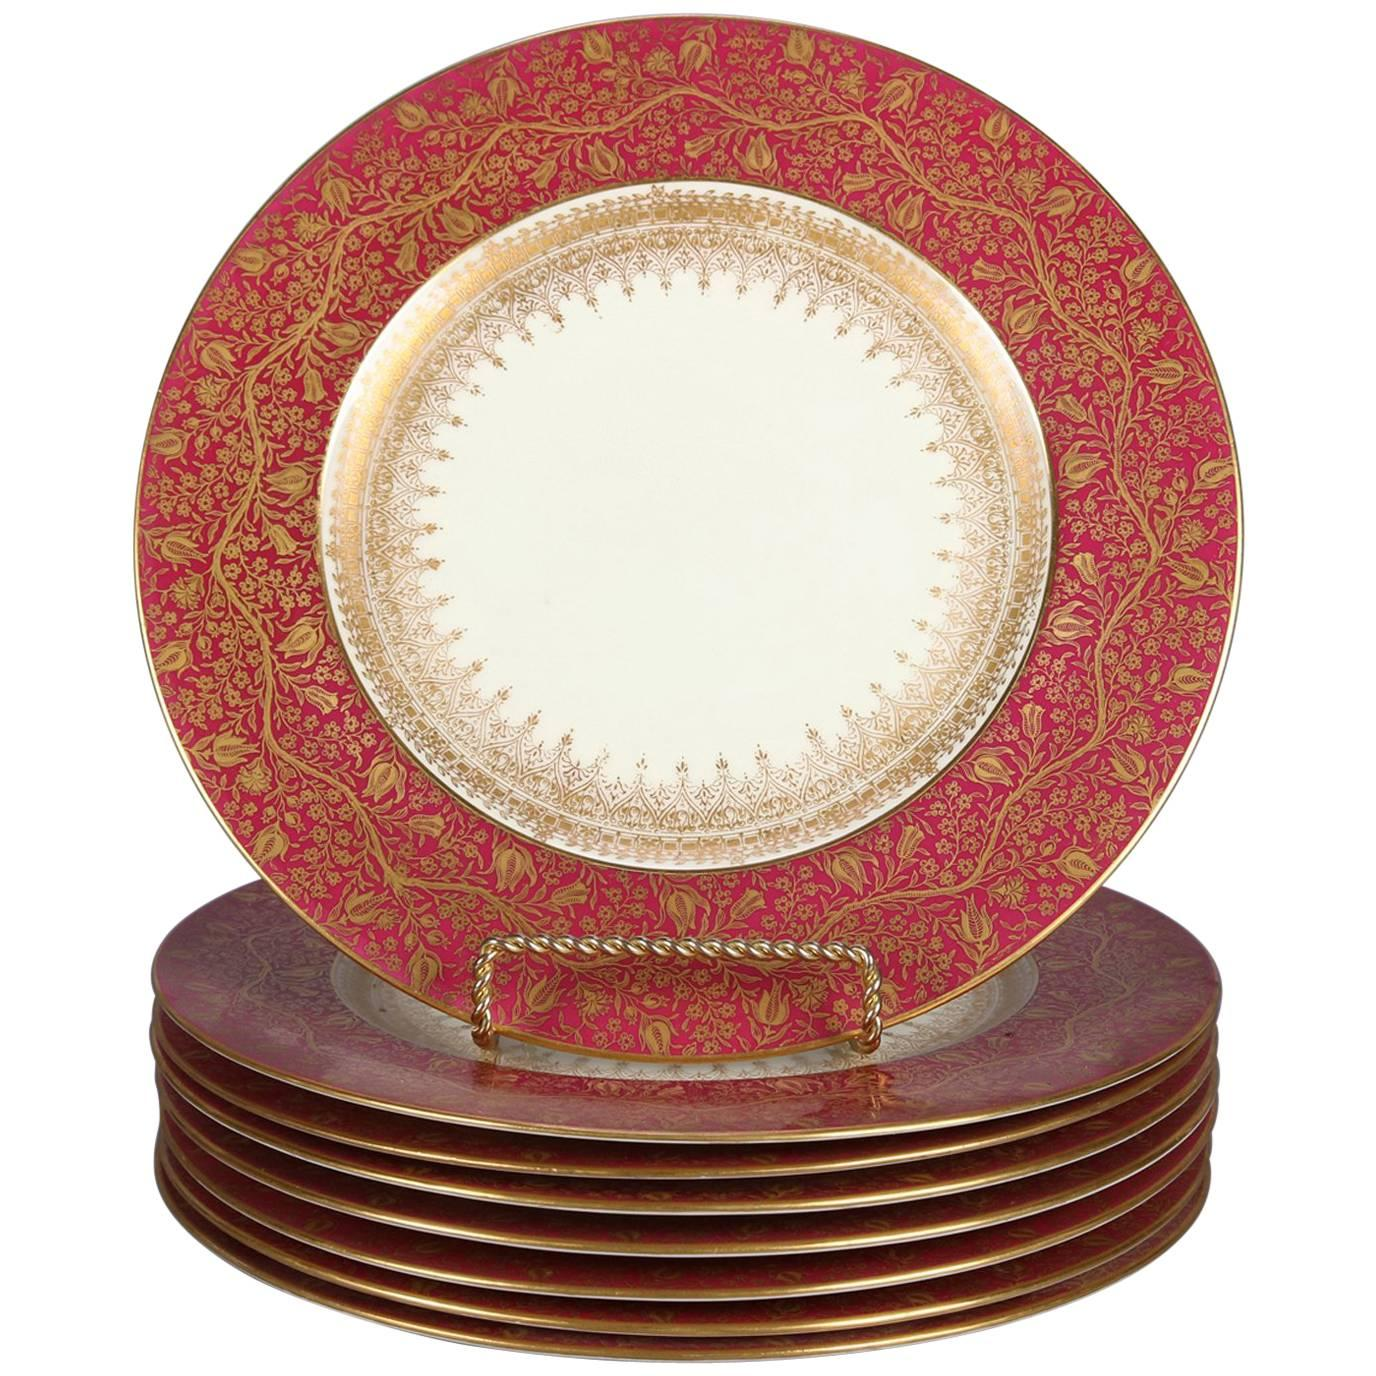 Eight English Gilt Fine China Dinner Plates by George Jones Crescent \u0026 Sons For Sale  sc 1 st  1stDibs & Eight English Gilt Fine China Dinner Plates by George Jones Crescent ...